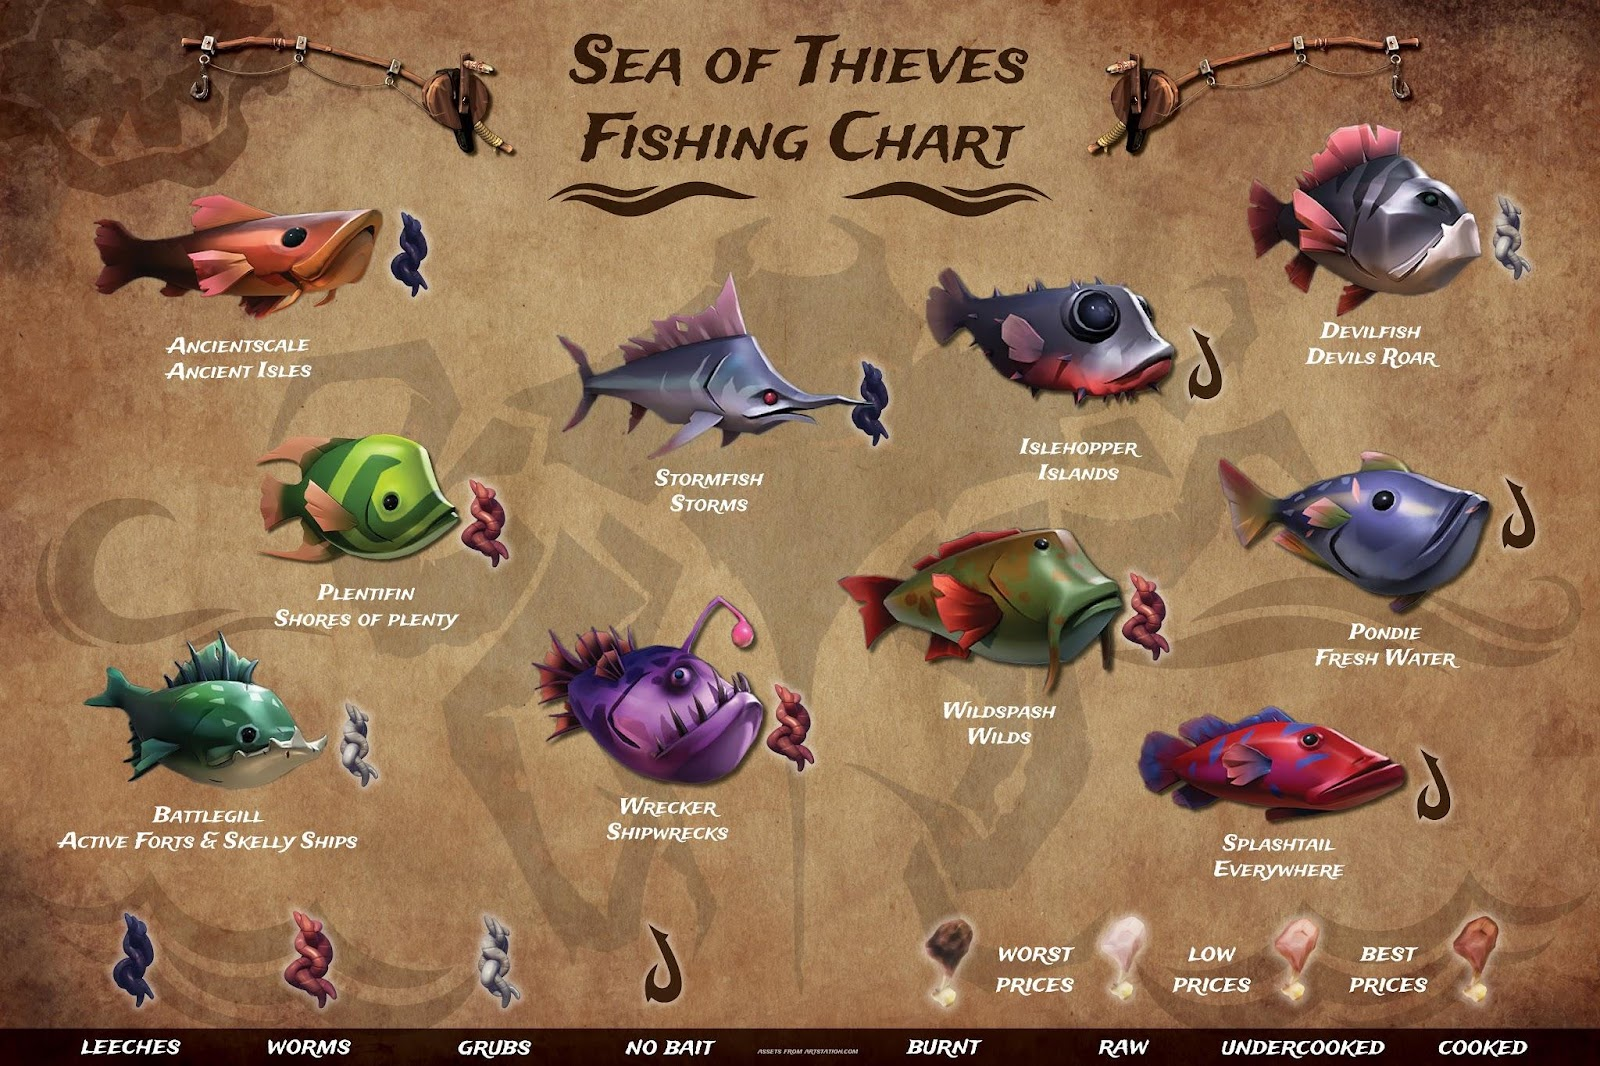 Huge Collection of Sea of thieves fishing chart